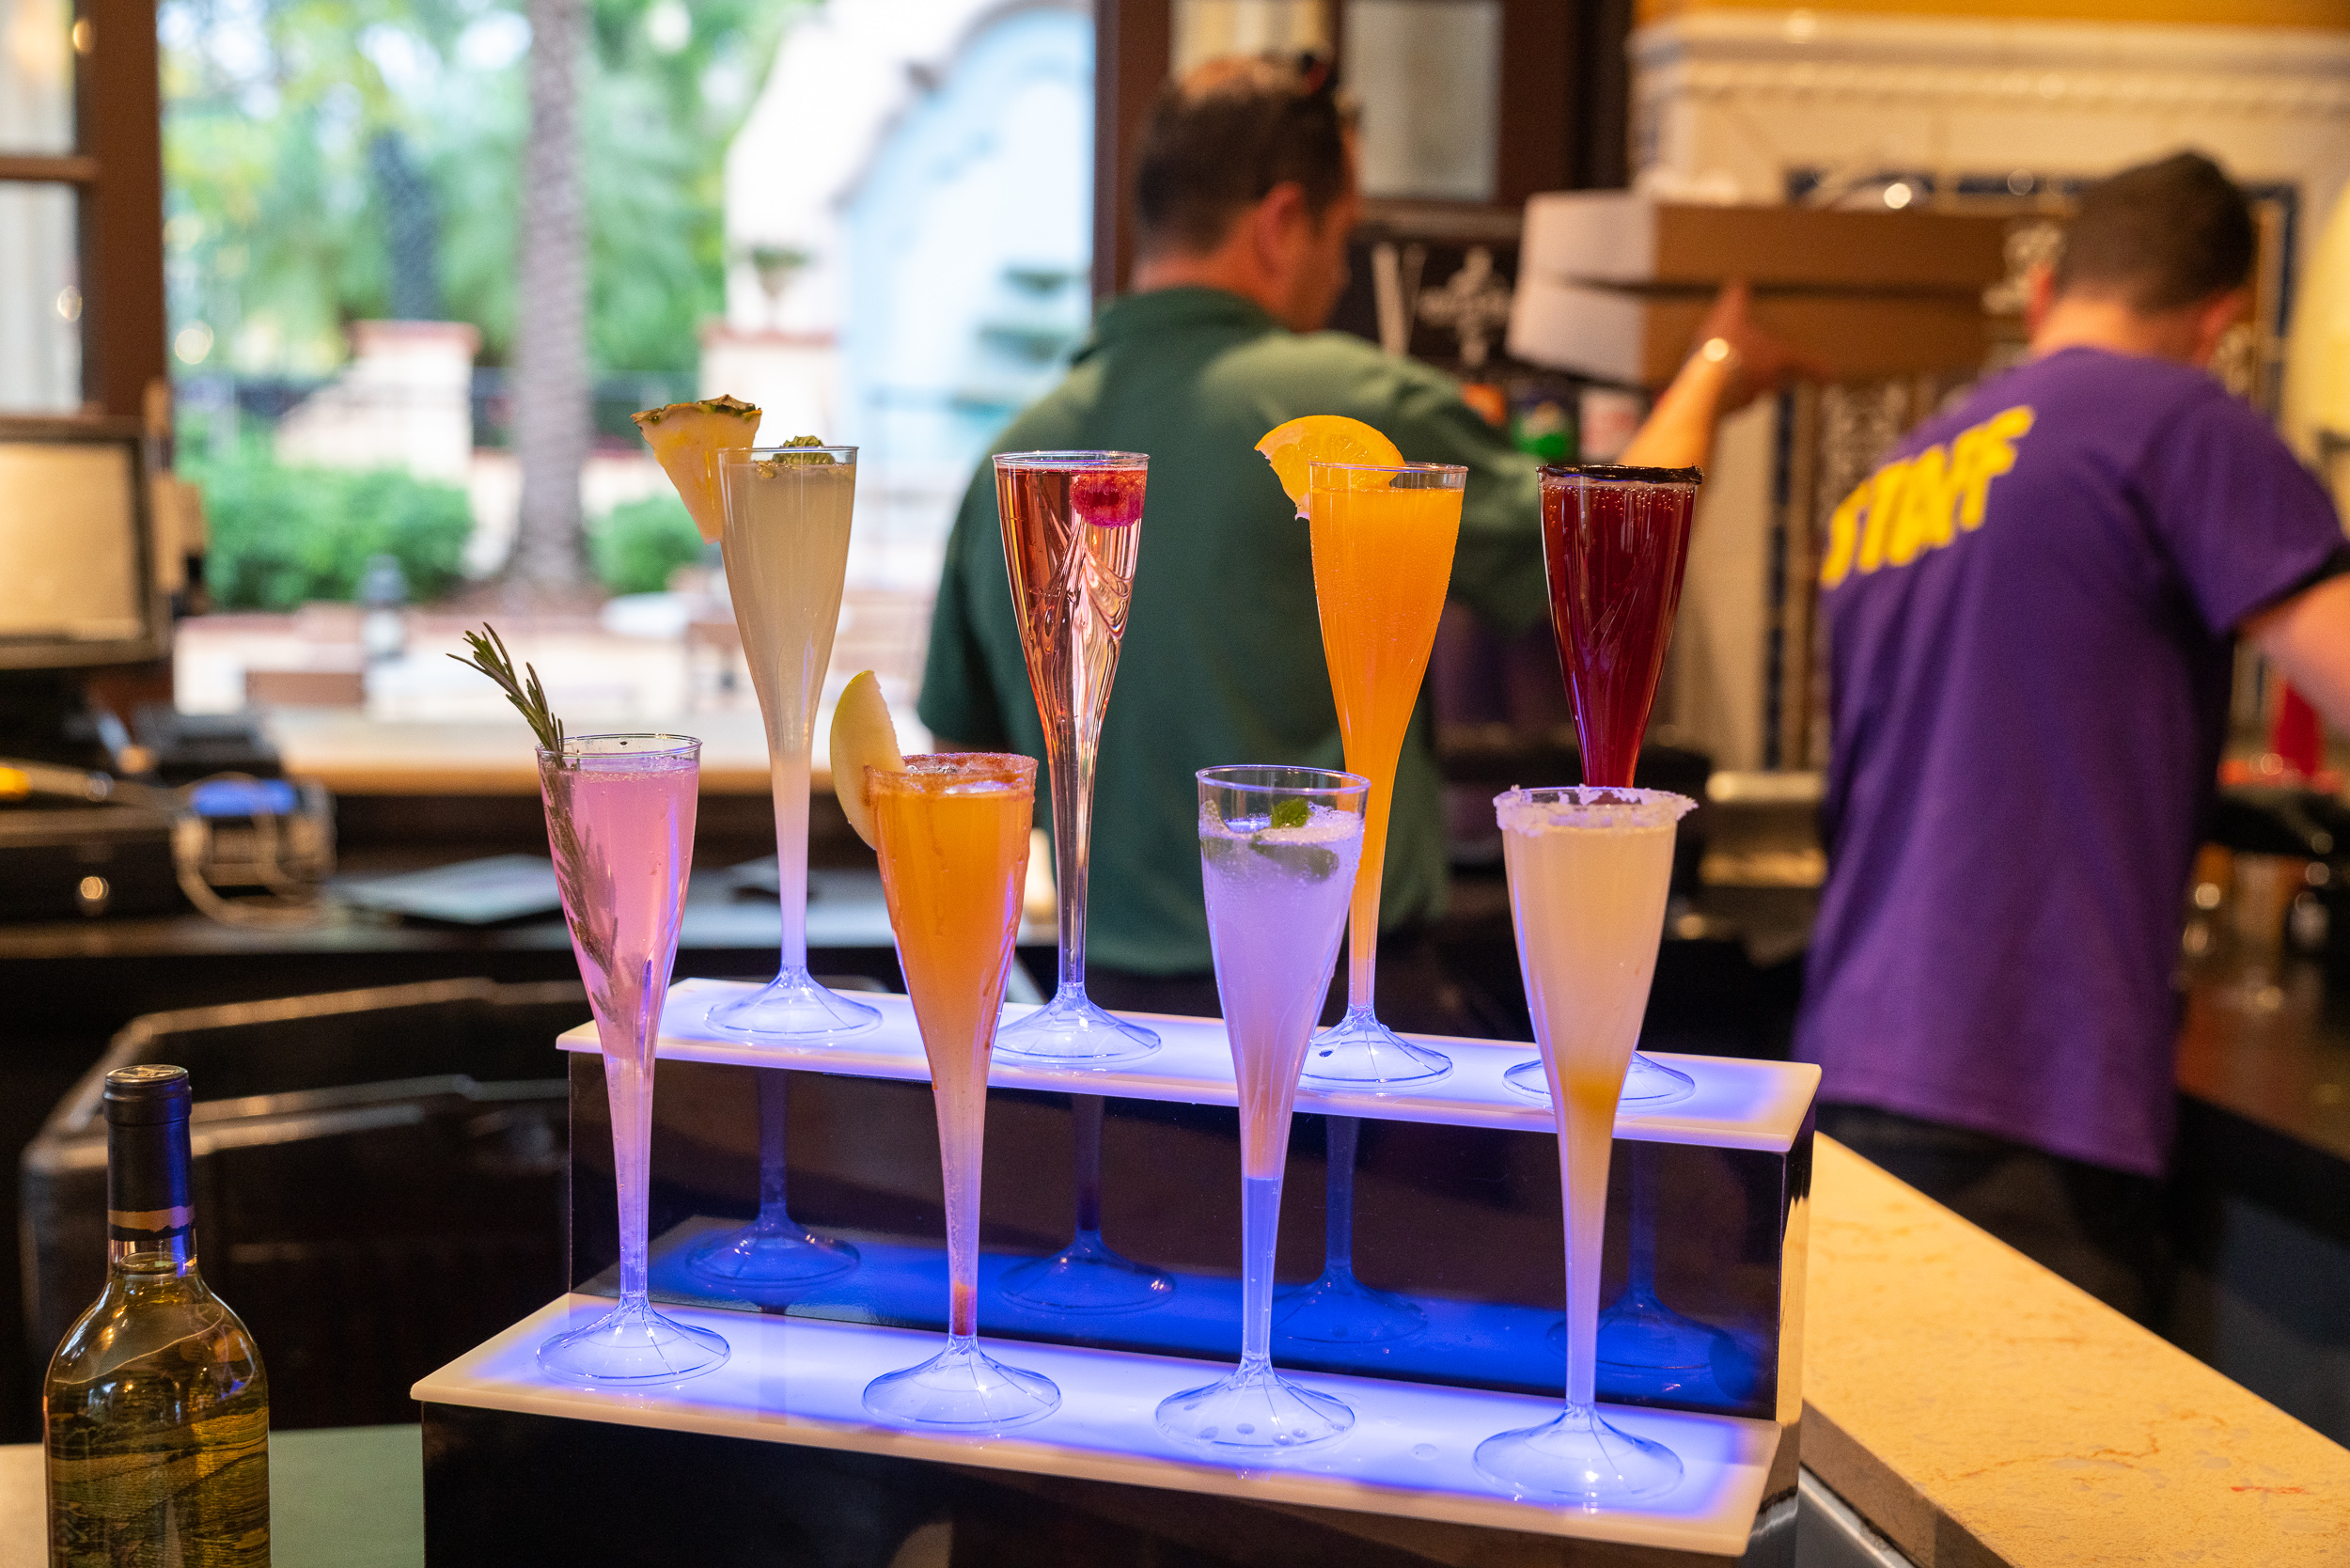 The mimosa selection at Cafe La Bamba.